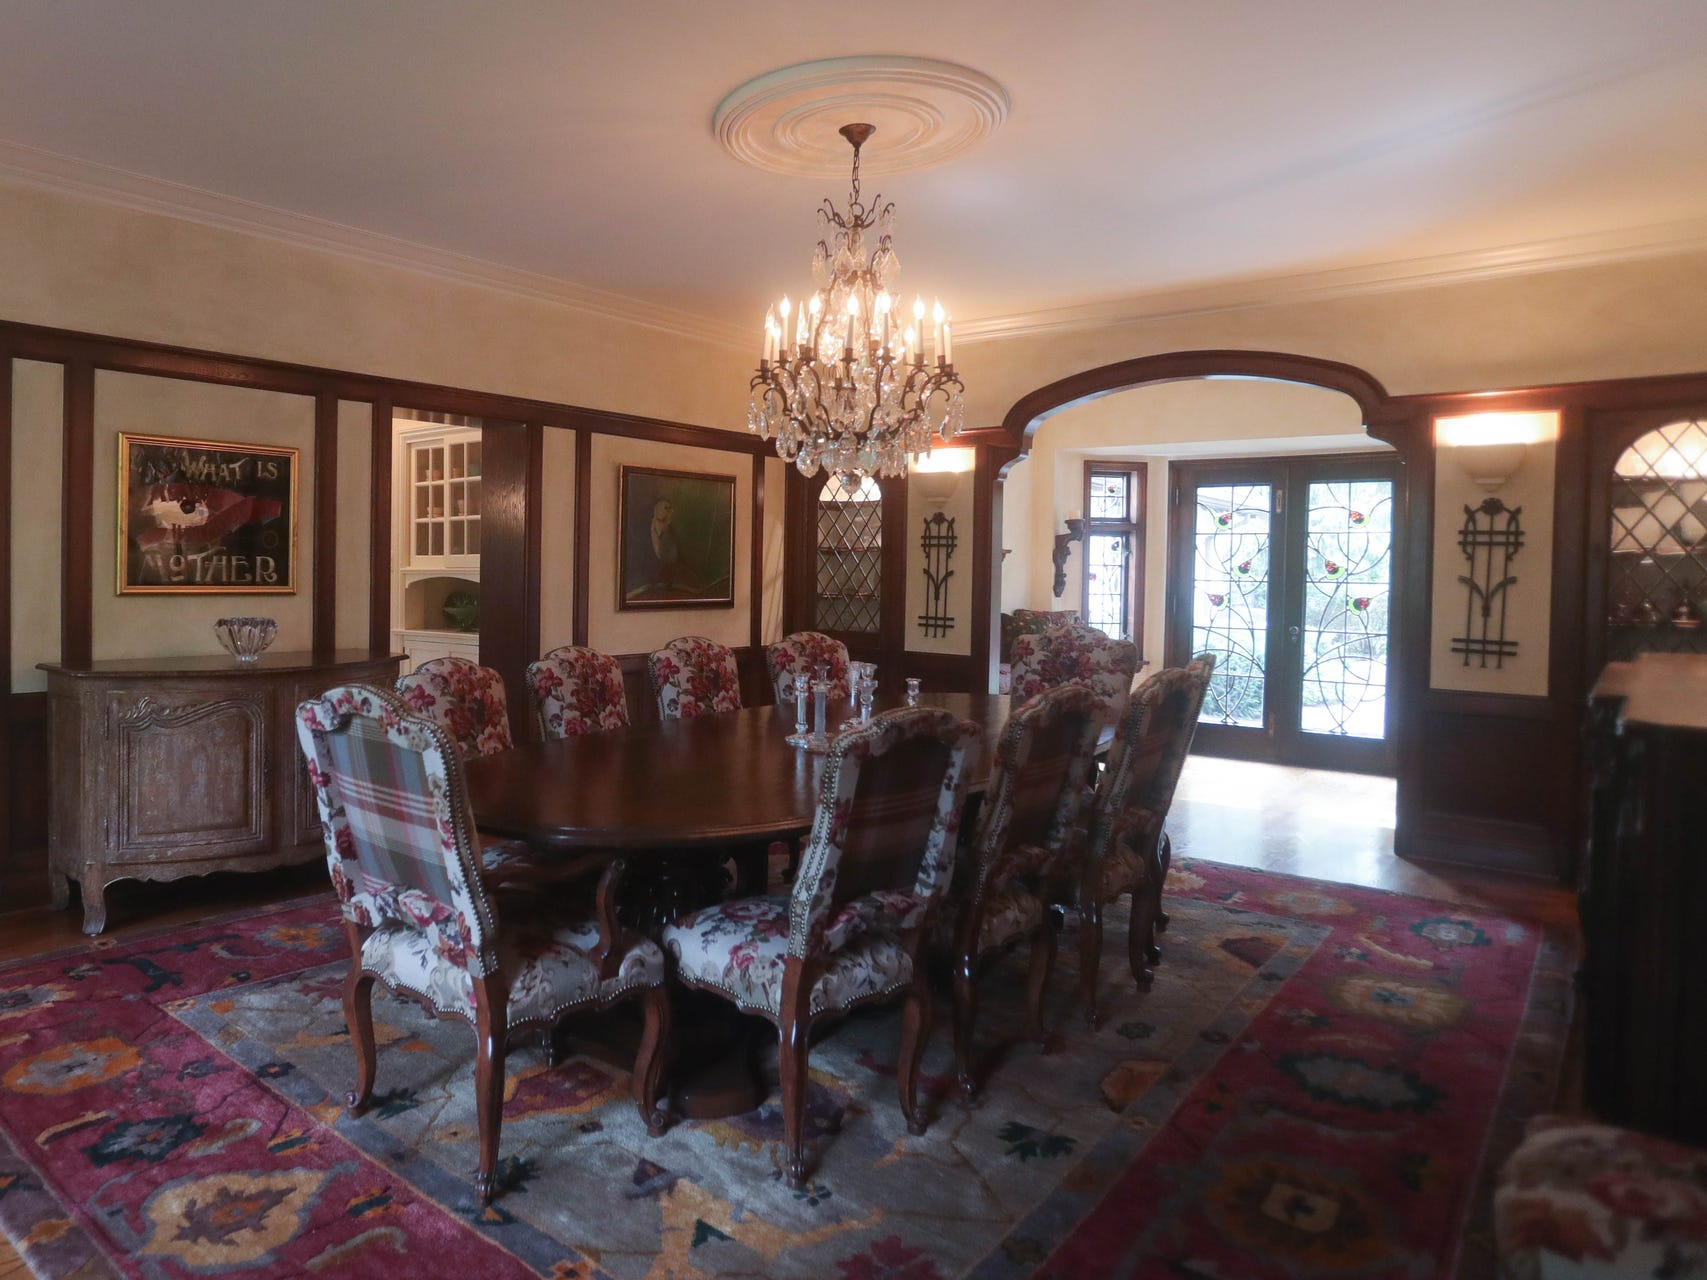 The party-size dining room has built-in corner cabinets with diamond-shaped leaded glass. At the far back, an alcove has built-in seats. Its French doors and side windows carry gradeful [ stained glass images of acorns.